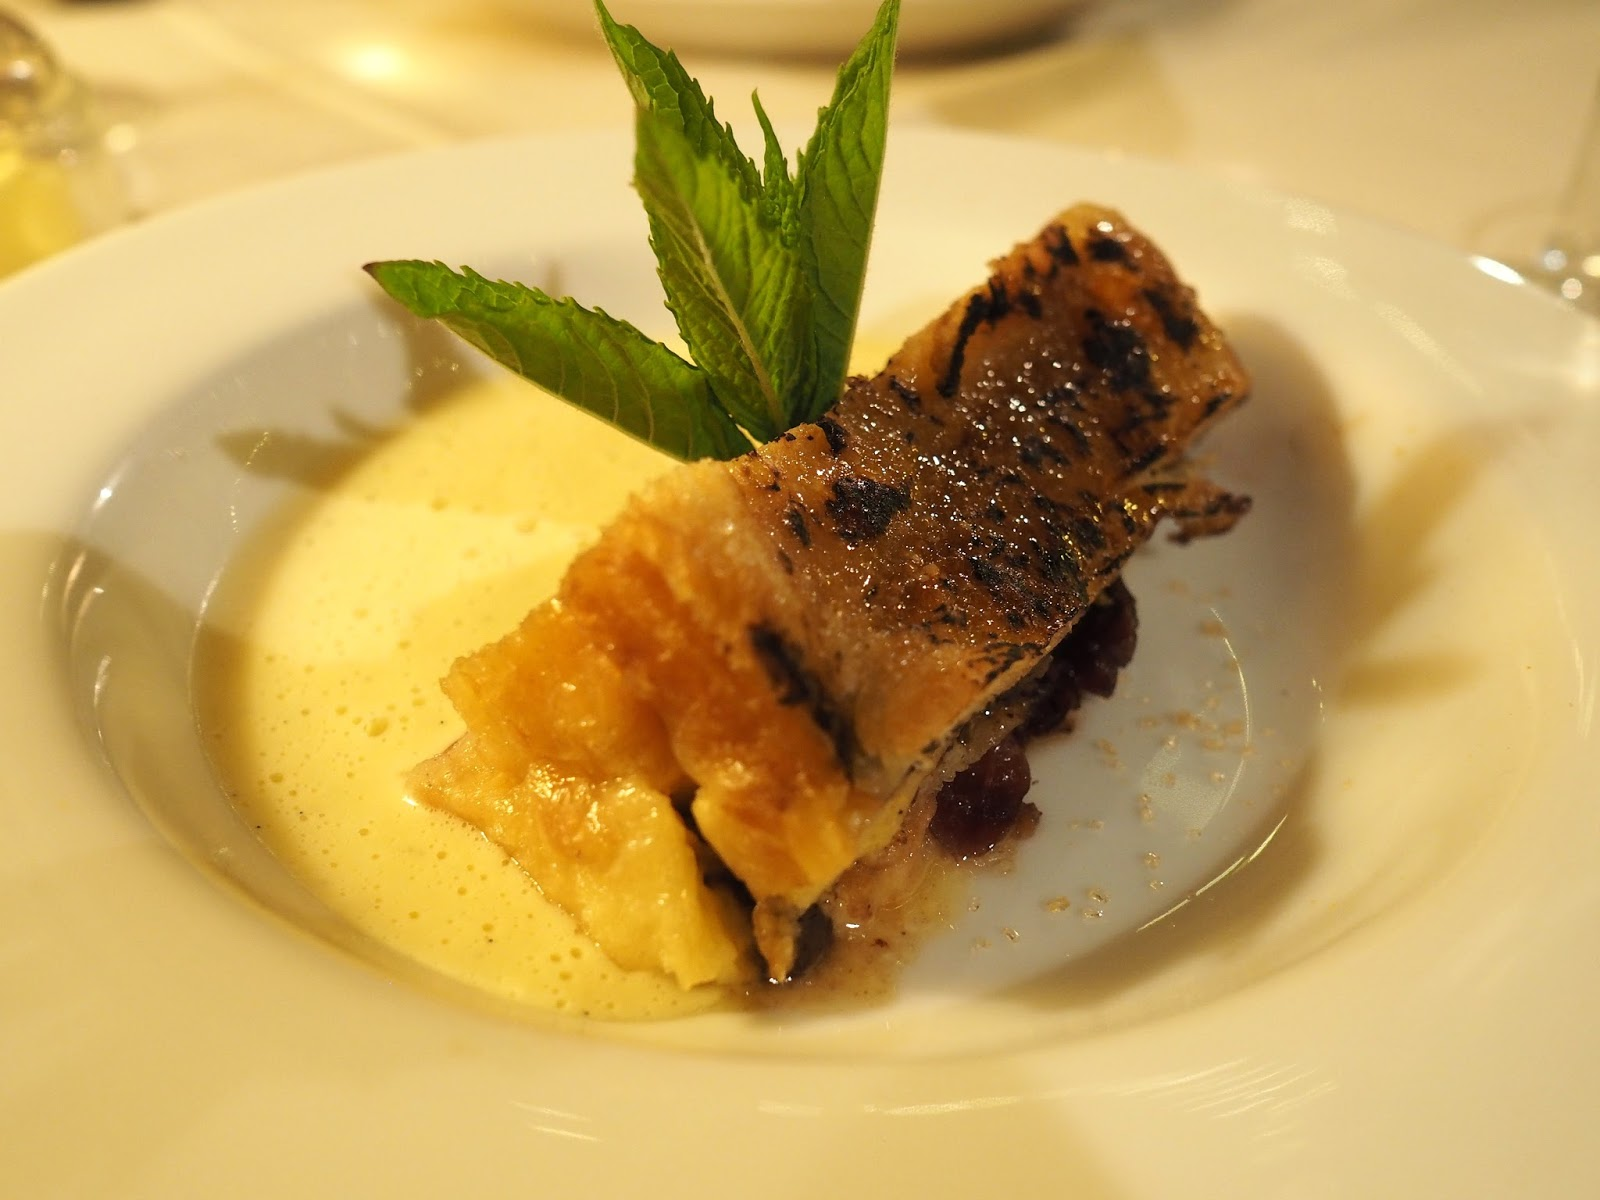 Chocolate bread and butter pudding with creme anglaise Le Caveau, excellent French restaurant in Skipton, North Yorkshire